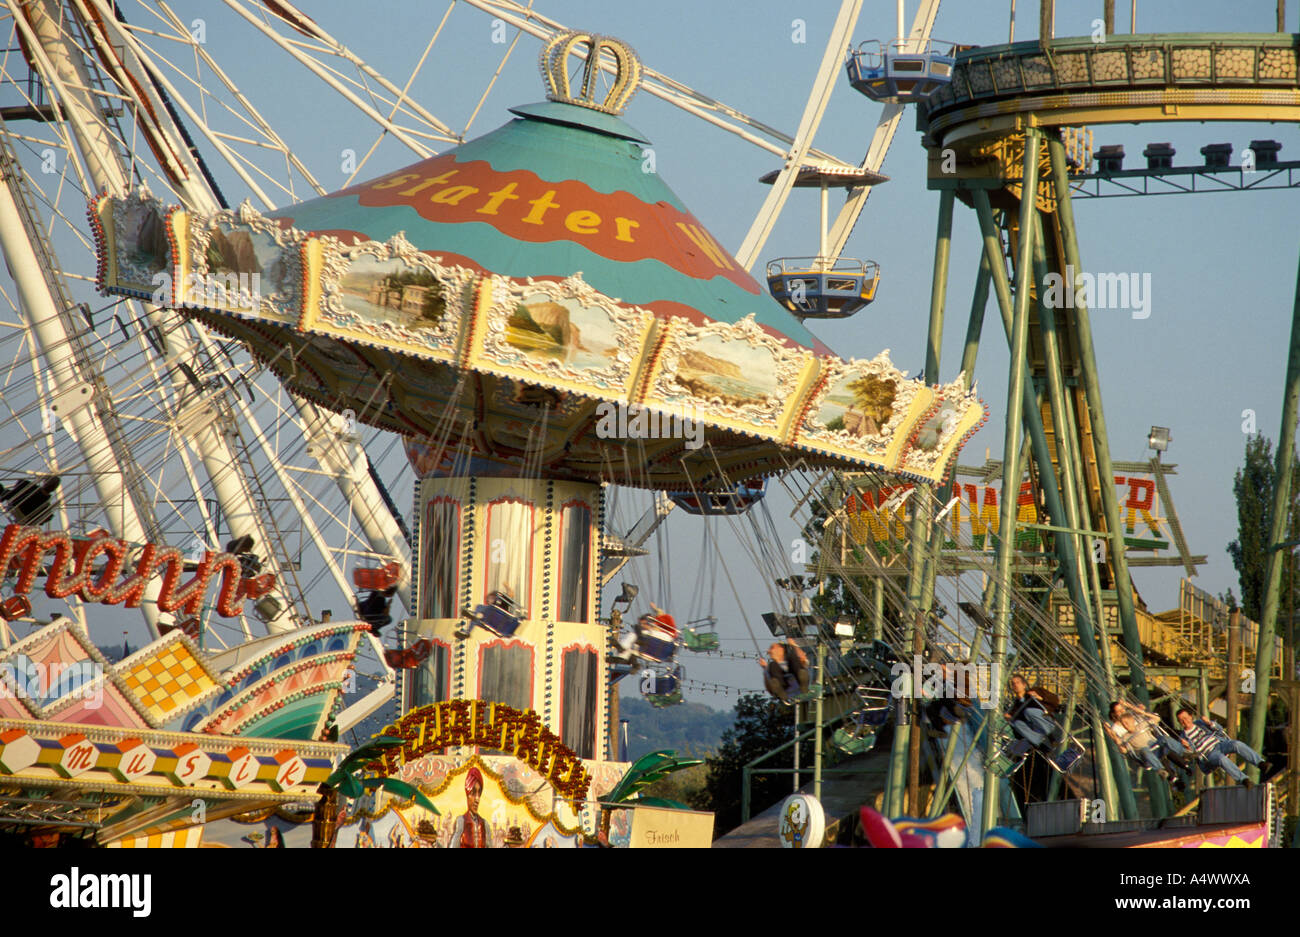 People at a merry go round at the festival Cannstatter Volksfest  Stuttgart Baden Wuerttemberg Germany Stock Photo